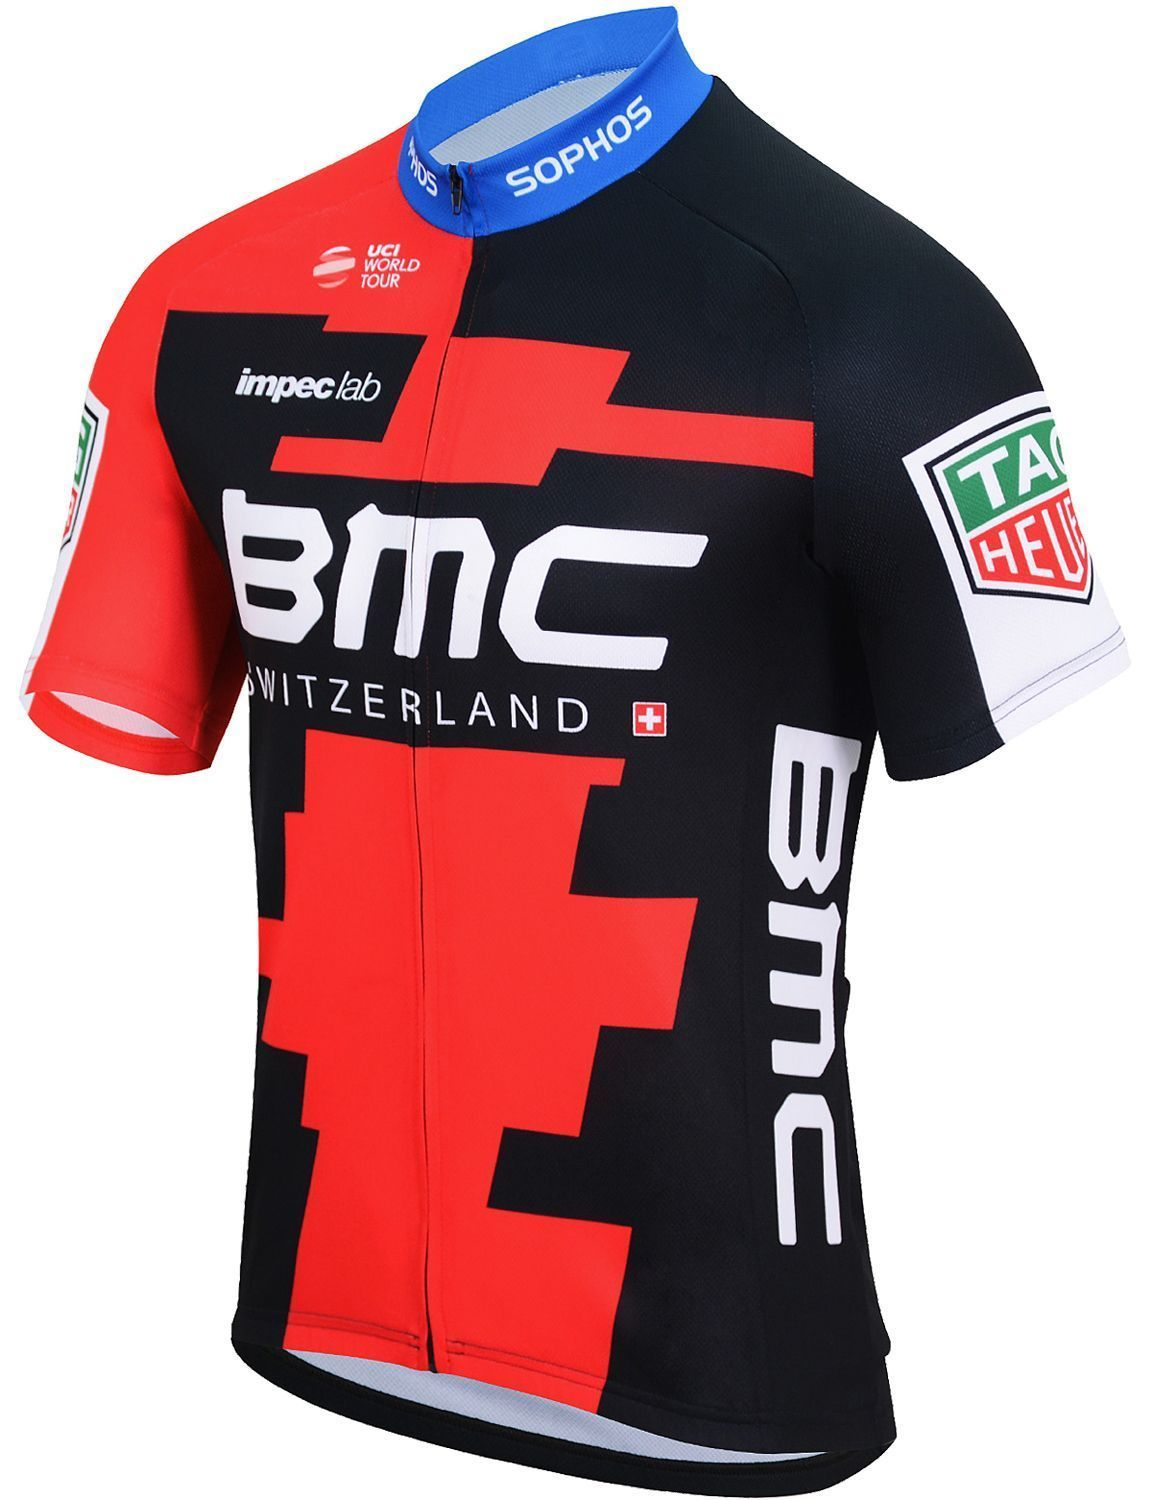 7b7aad1c1 ... jersey - professional cycling team. Next